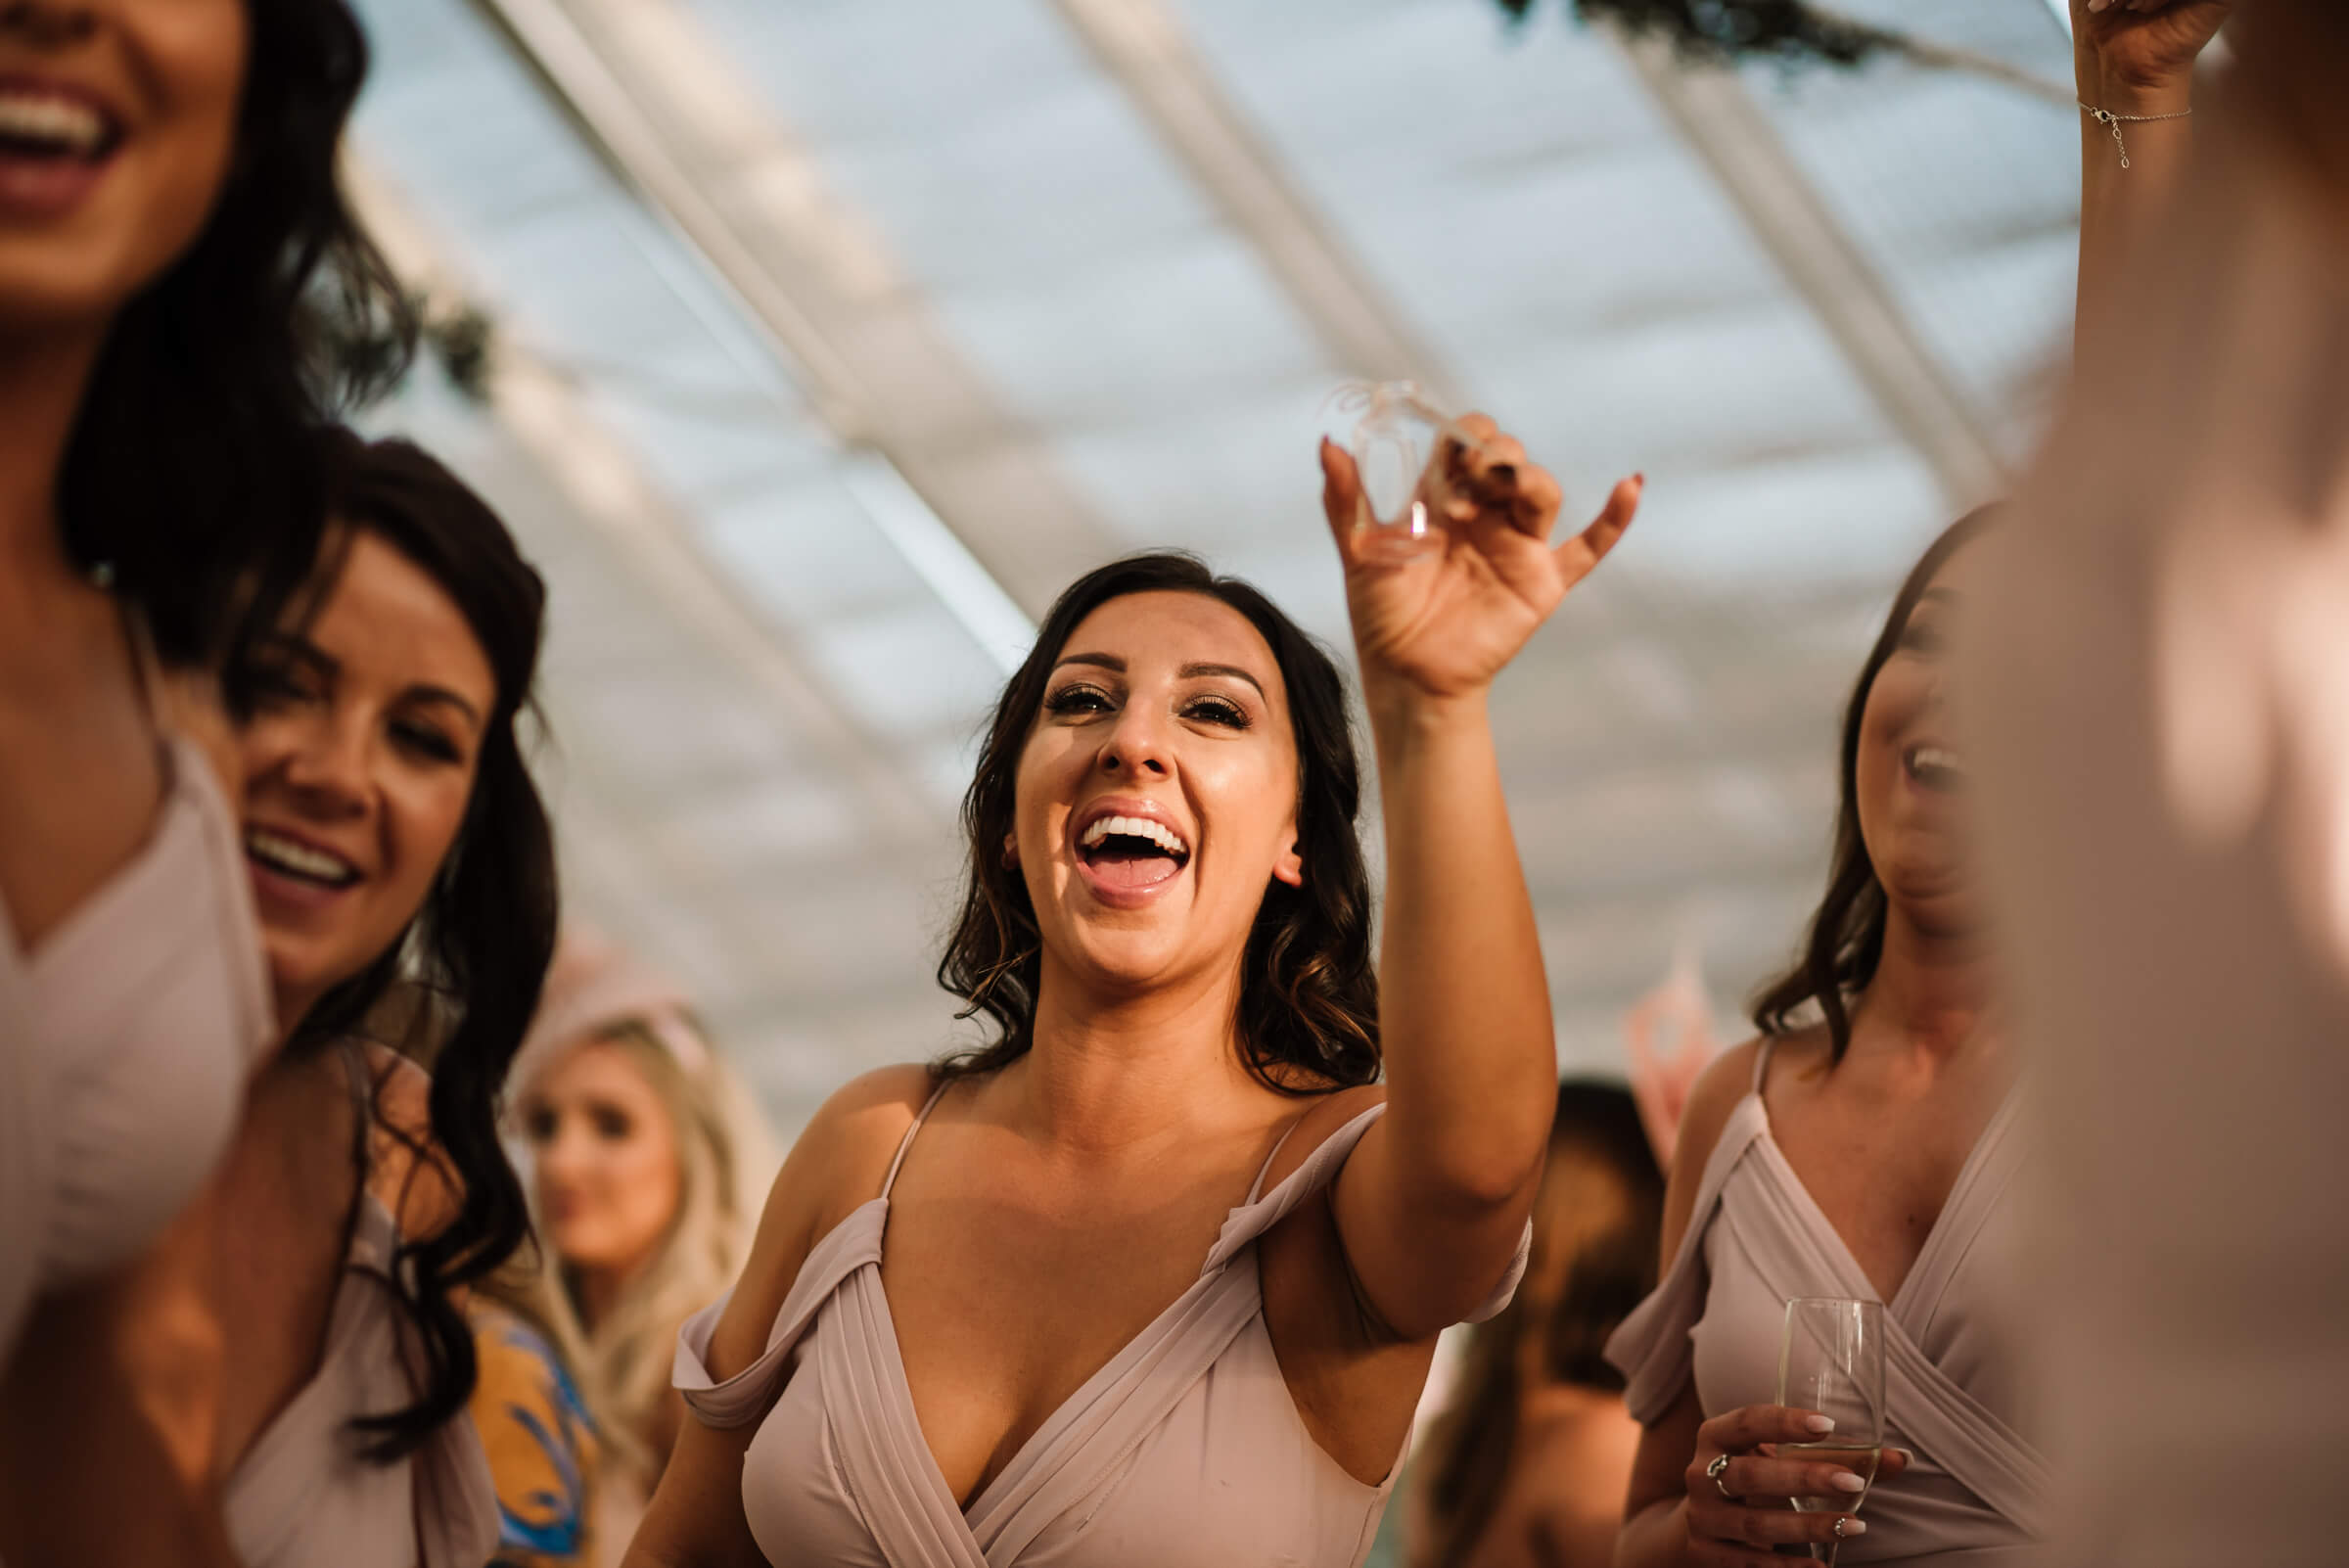 bridesmaid laughing and holding shot